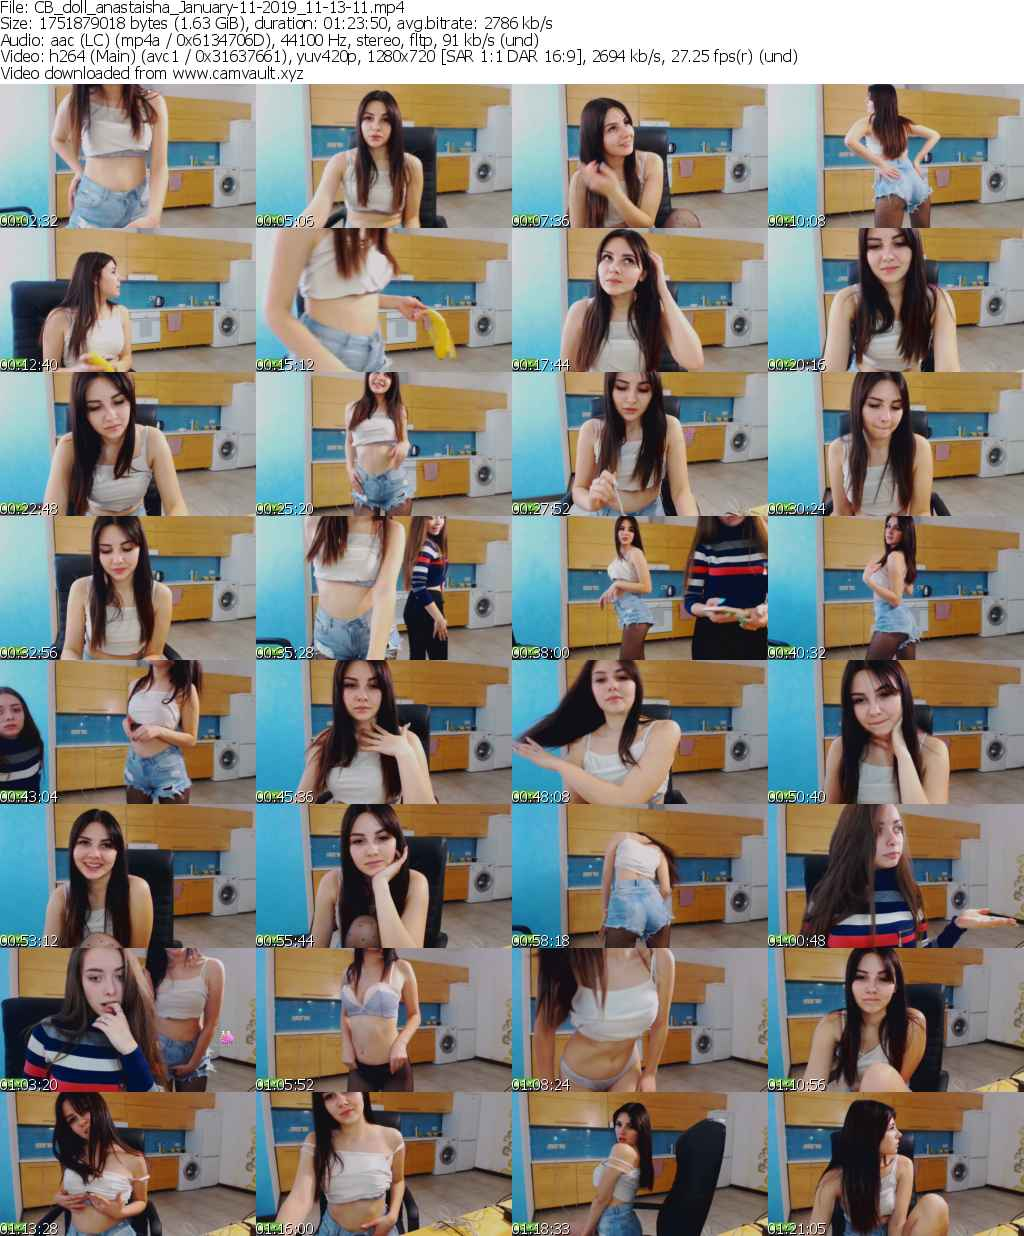 Video preview for model doll_anastaisha